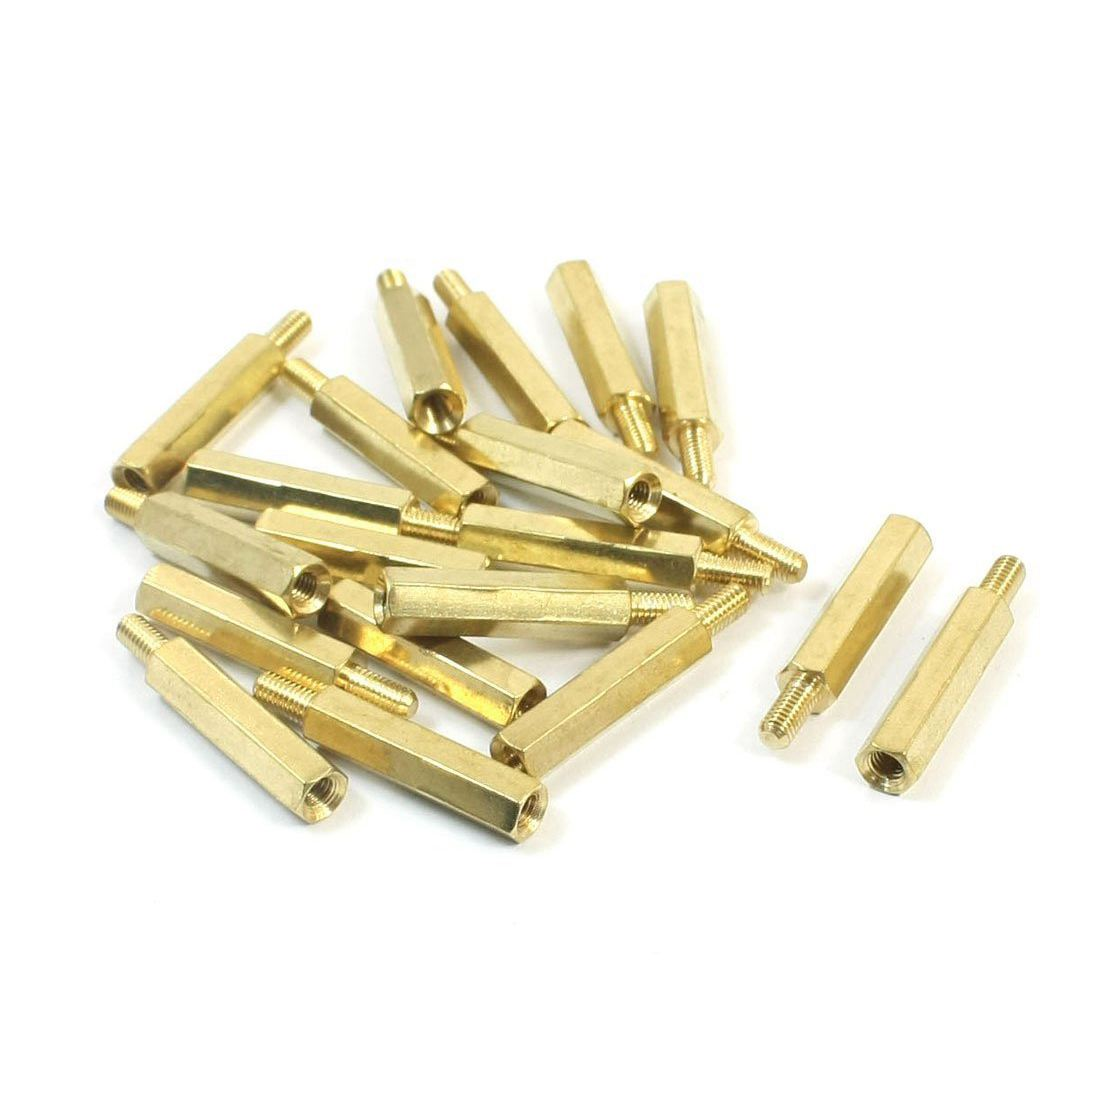 CNIM Hot 20 Pcs <font><b>M3</b></font> x <font><b>20mm</b></font> x 26mm Male to Female PCB Hexagon Nut <font><b>Standoff</b></font> Spacer image